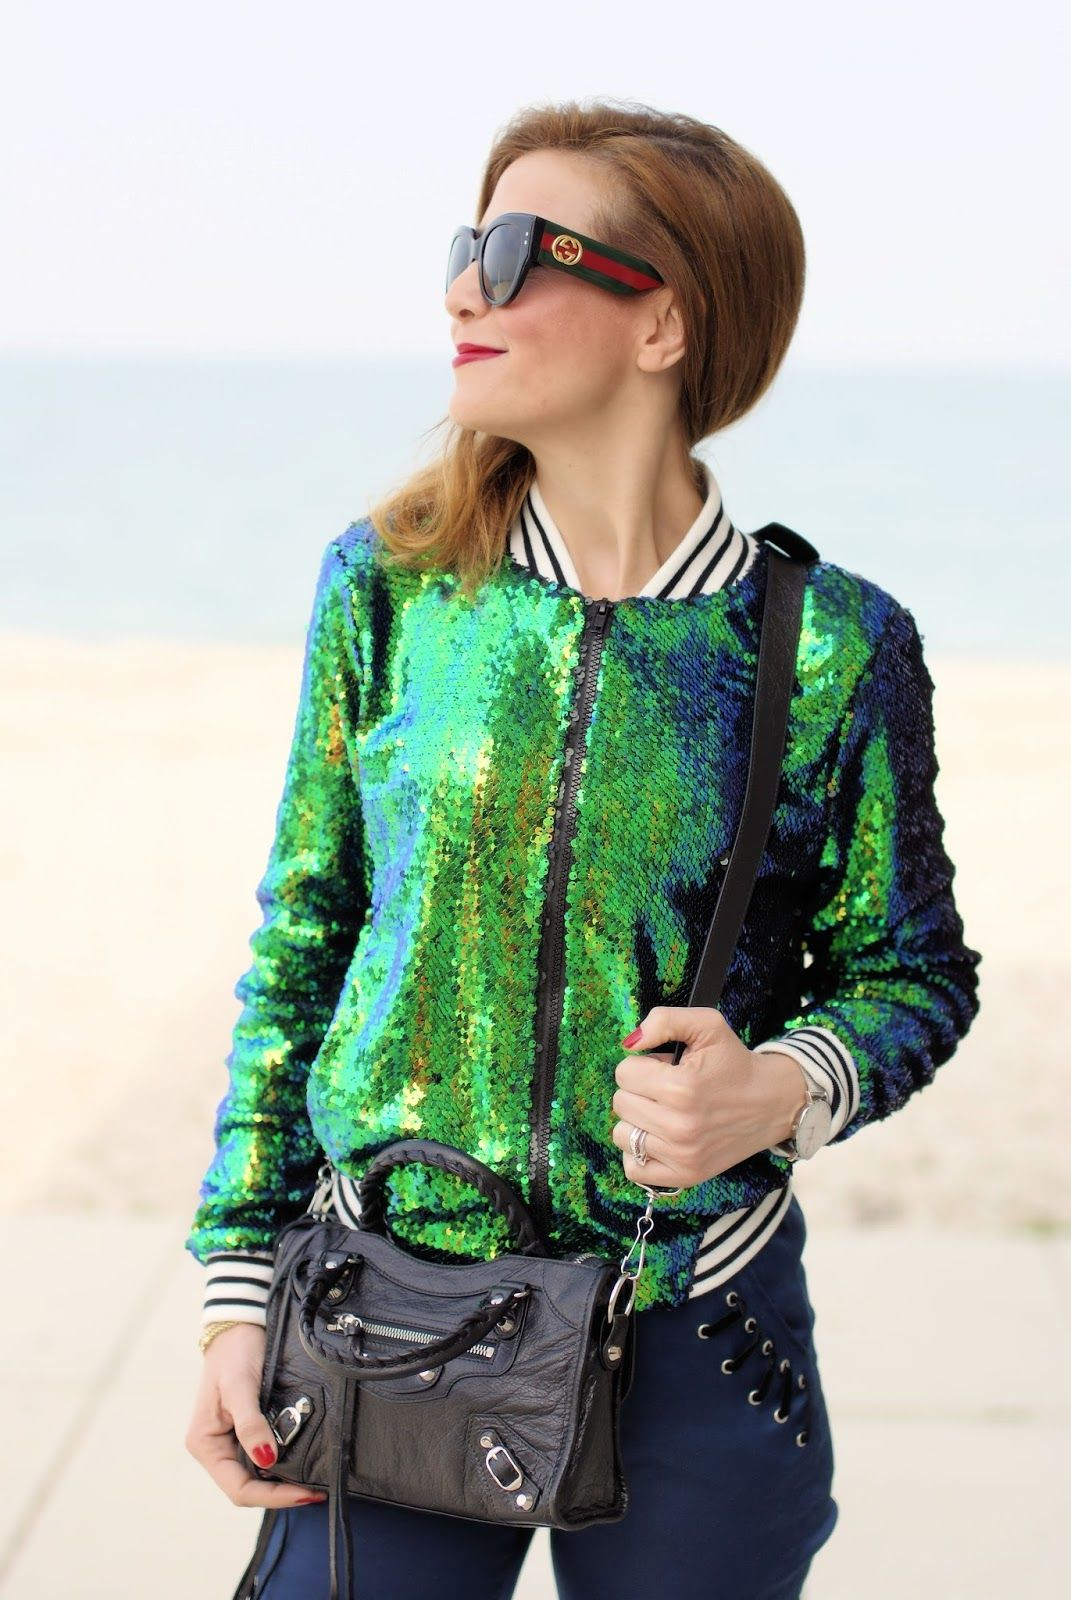 d36394153 Sequins bomber jacket and Gucci sunglasses Gucci Sunglasses, Bomber Jacket, Lace  Up, Fat